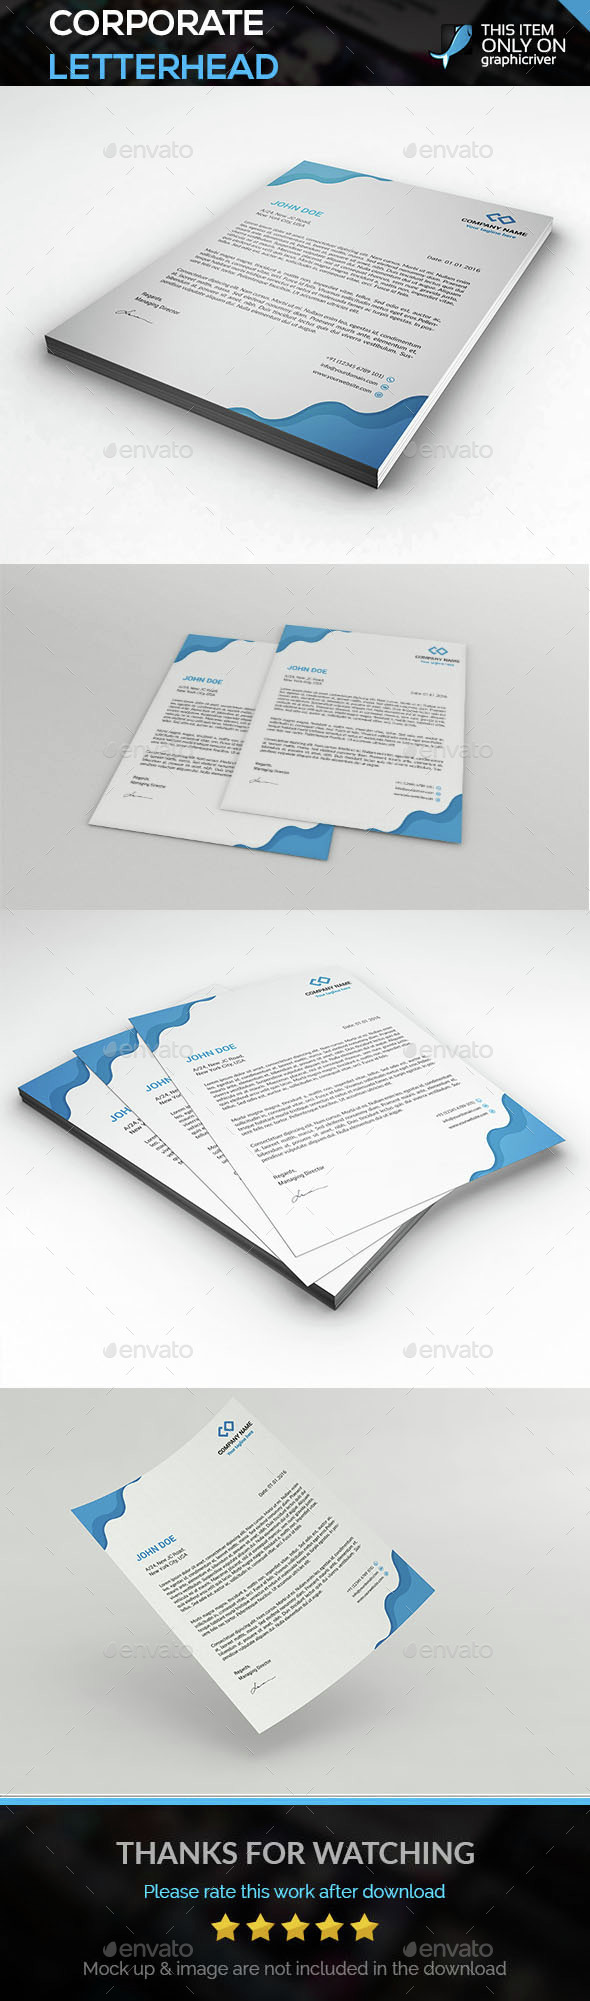 Corporate Letterhead - Corporate Flyers